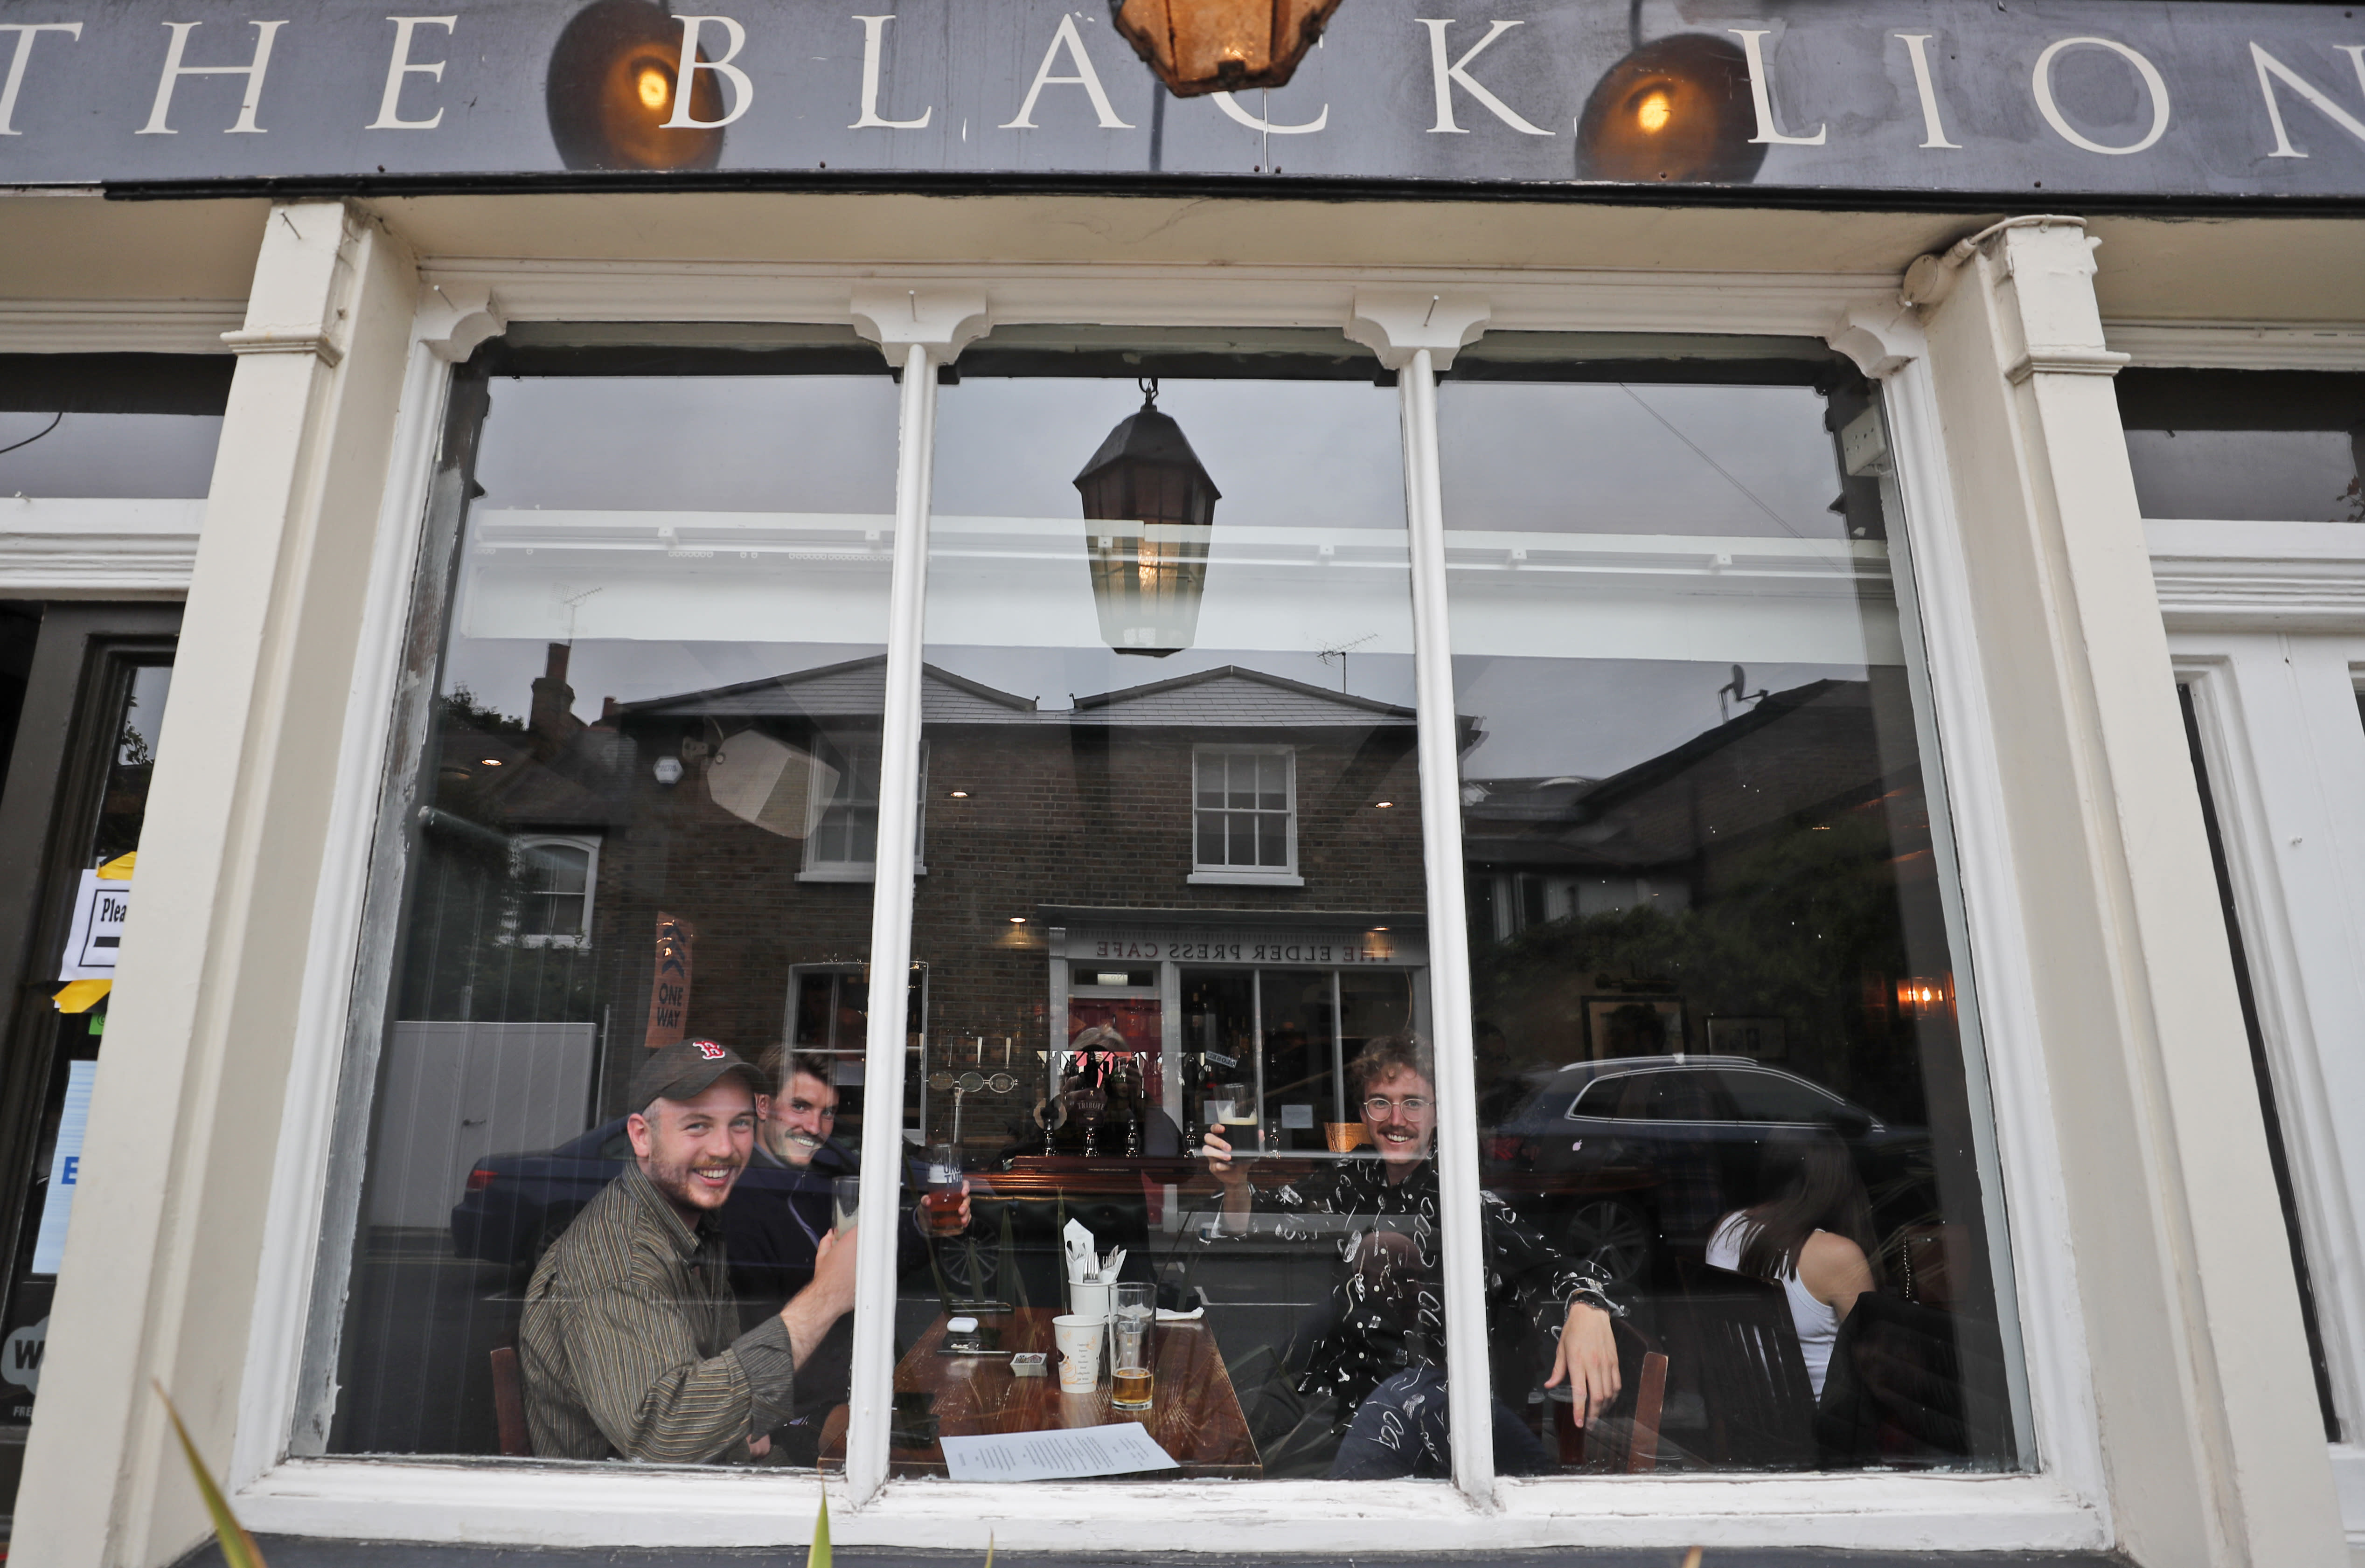 People enjoy their drinks at The Black Lion pub in London, Saturday, July 4, 2020. England is embarking on perhaps its biggest lockdown easing yet as pubs and restaurants have the right to reopen for the first time in more than three months. In addition to the reopening of much of the hospitality sector, couples can tie the knot once again, while many of those who have had enough of their lockdown hair can finally get a trim. (AP Photo/Frank Augstein)